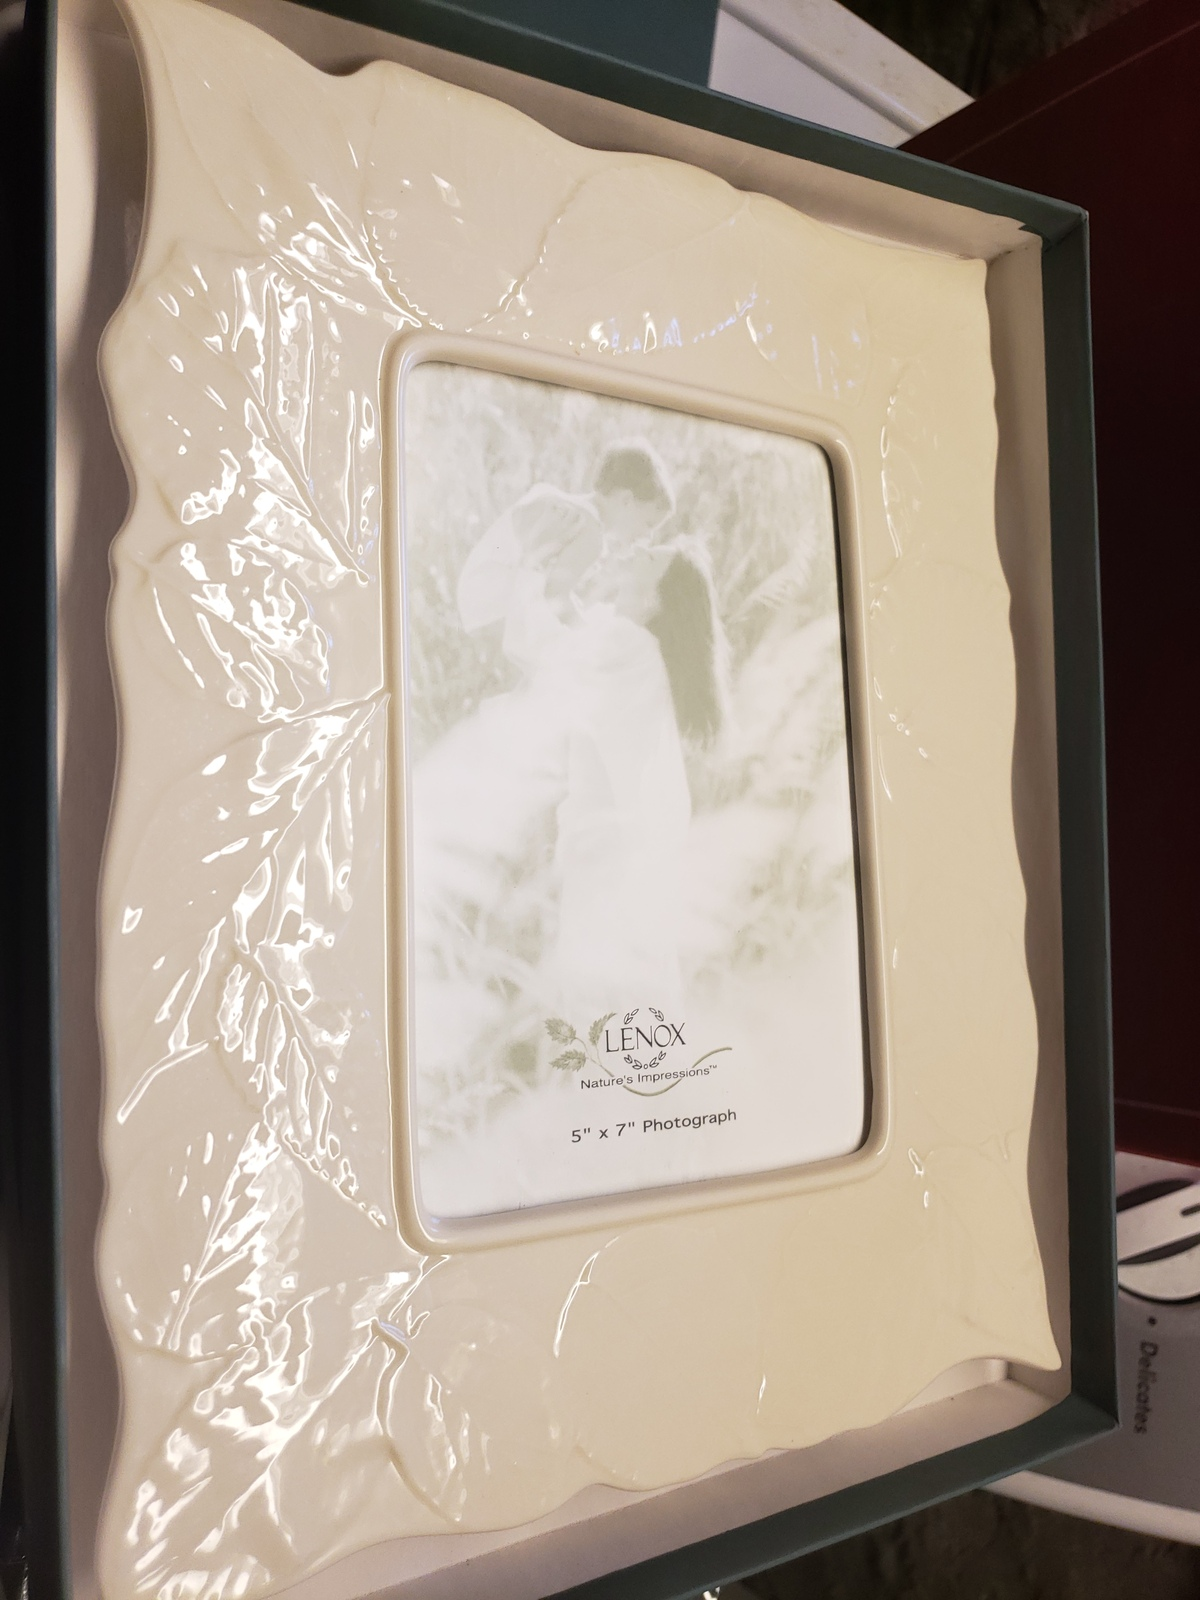 Brand New Lenox picture frame 5*7- Digital Photo Frames